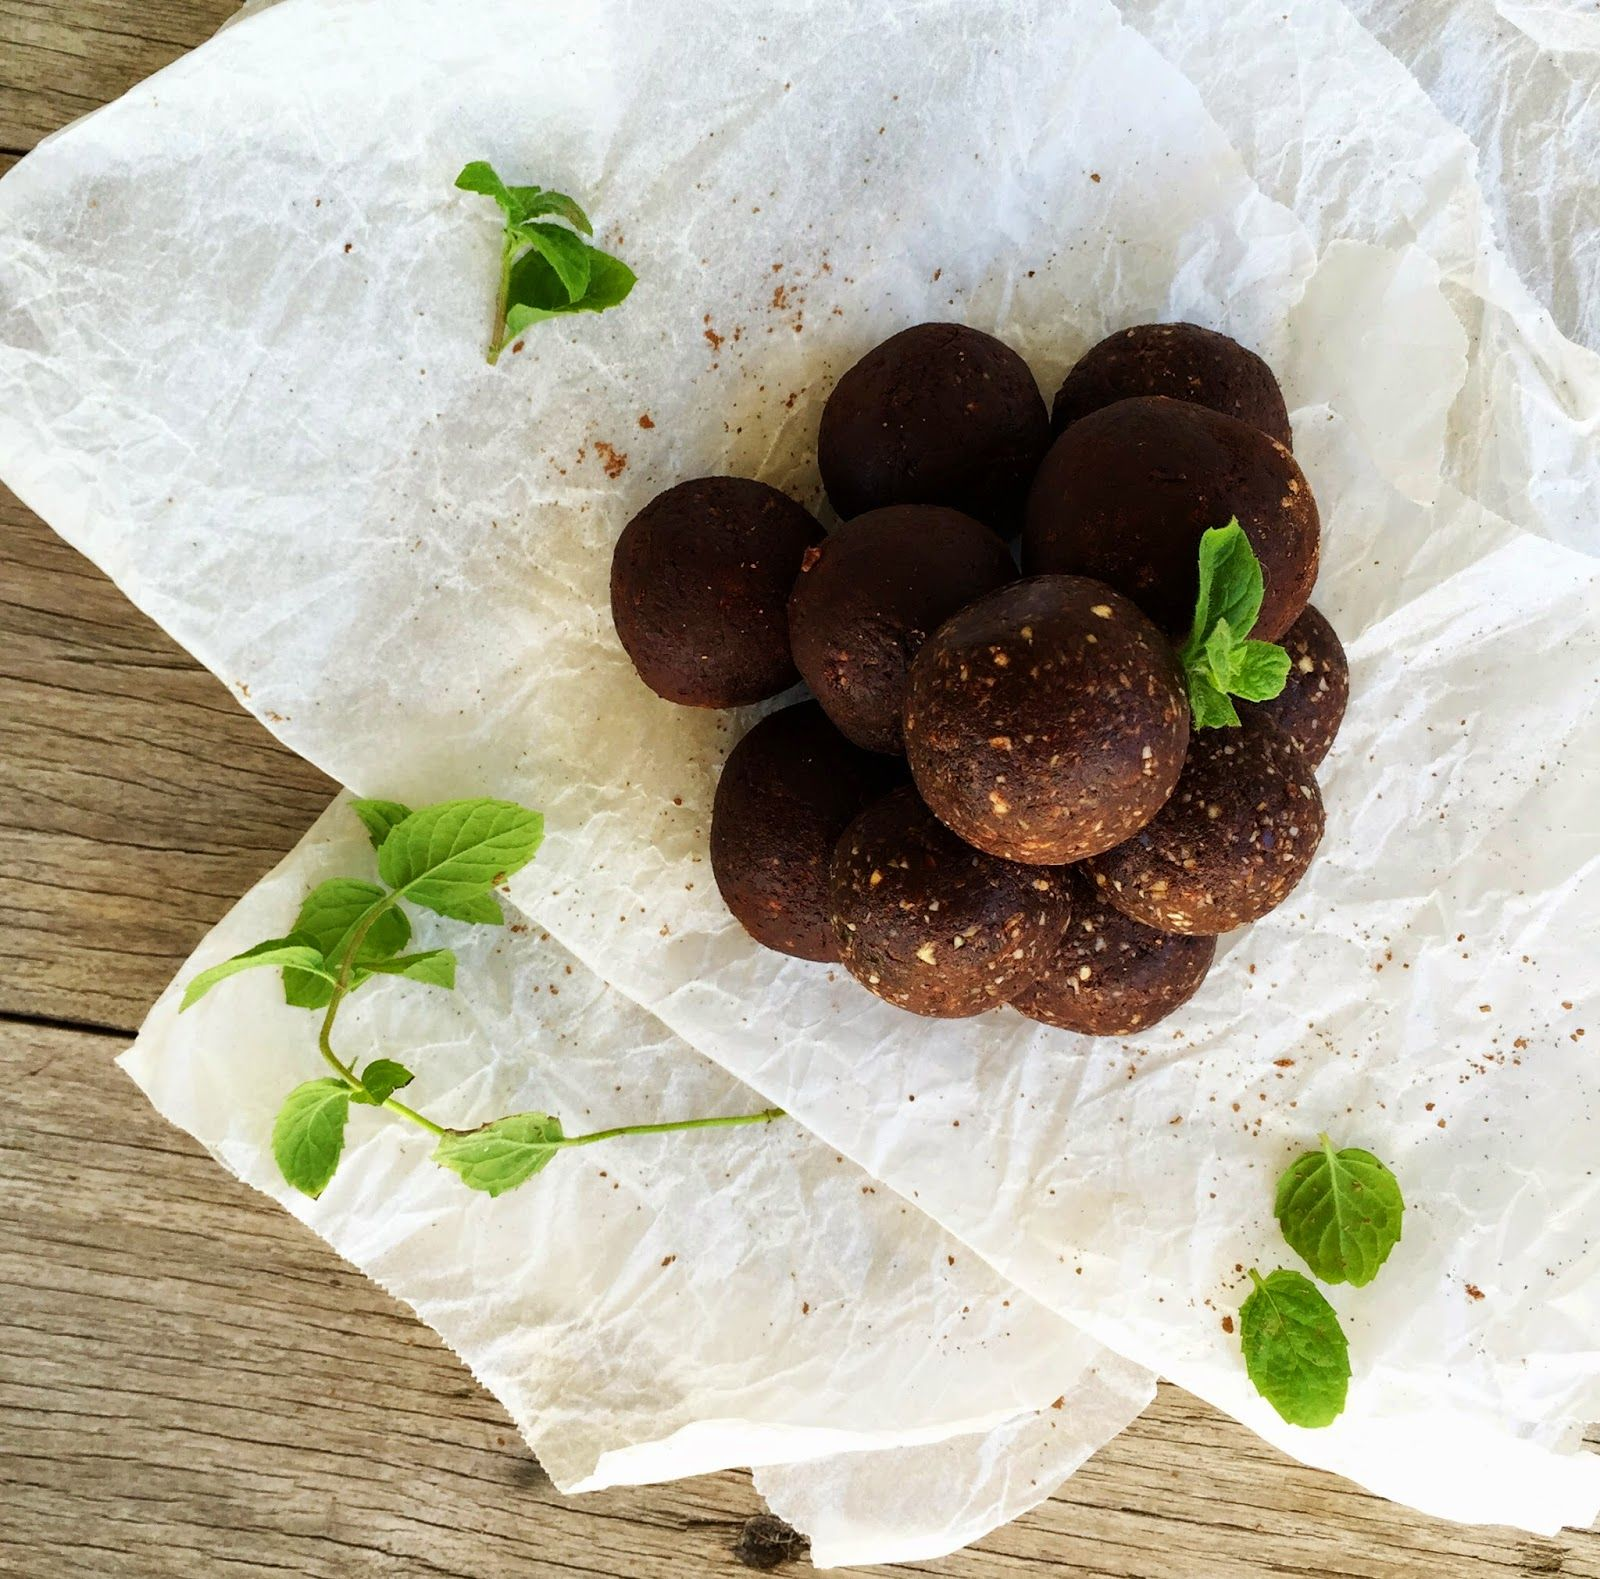 Chocolate, Mint and Coconut Bliss Balls